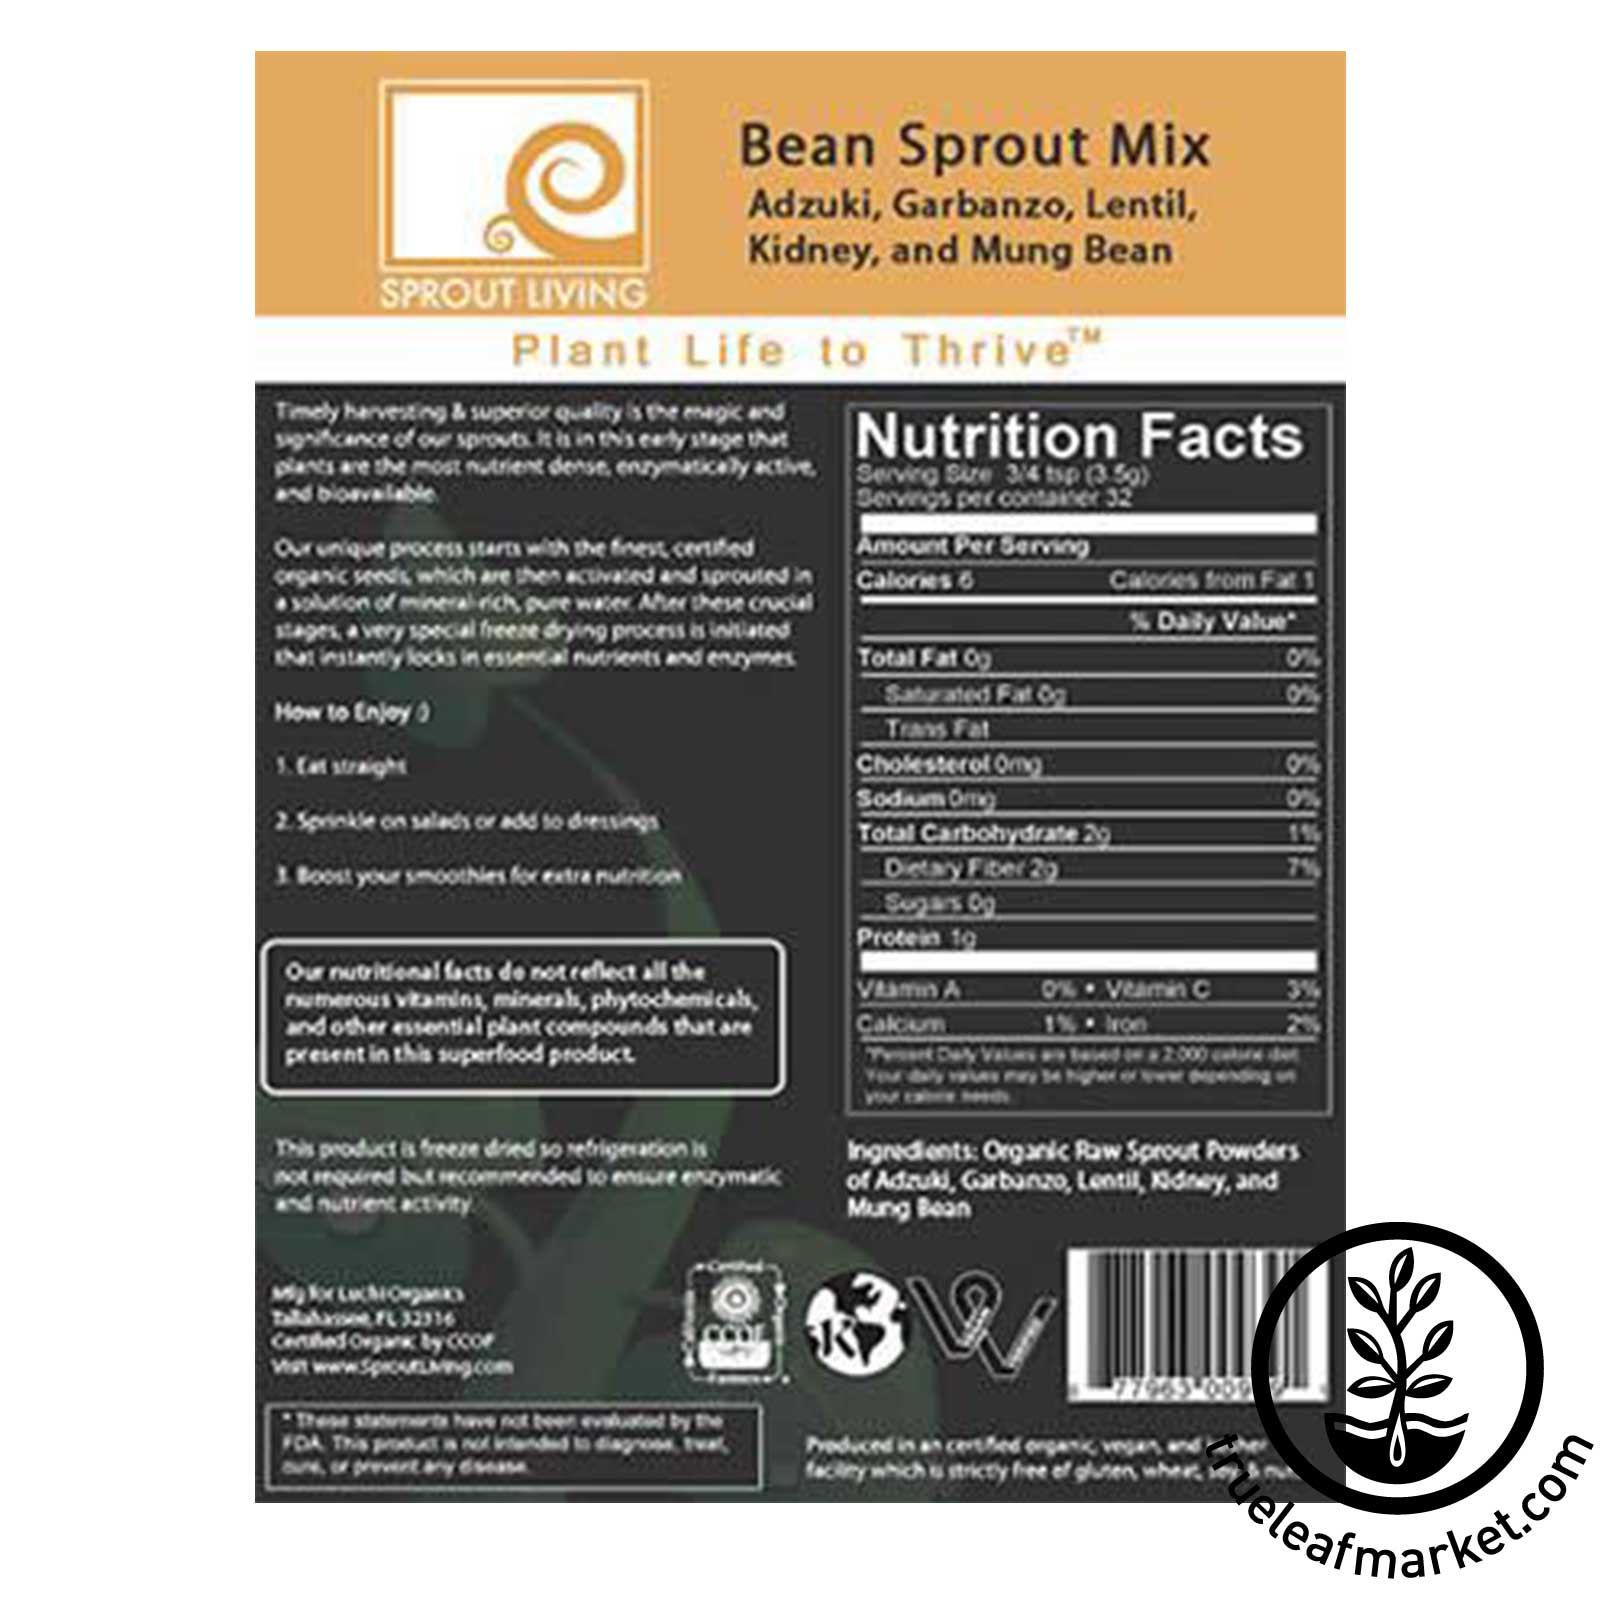 Powdered Bean Sprouts by Sprout Living - Back Label